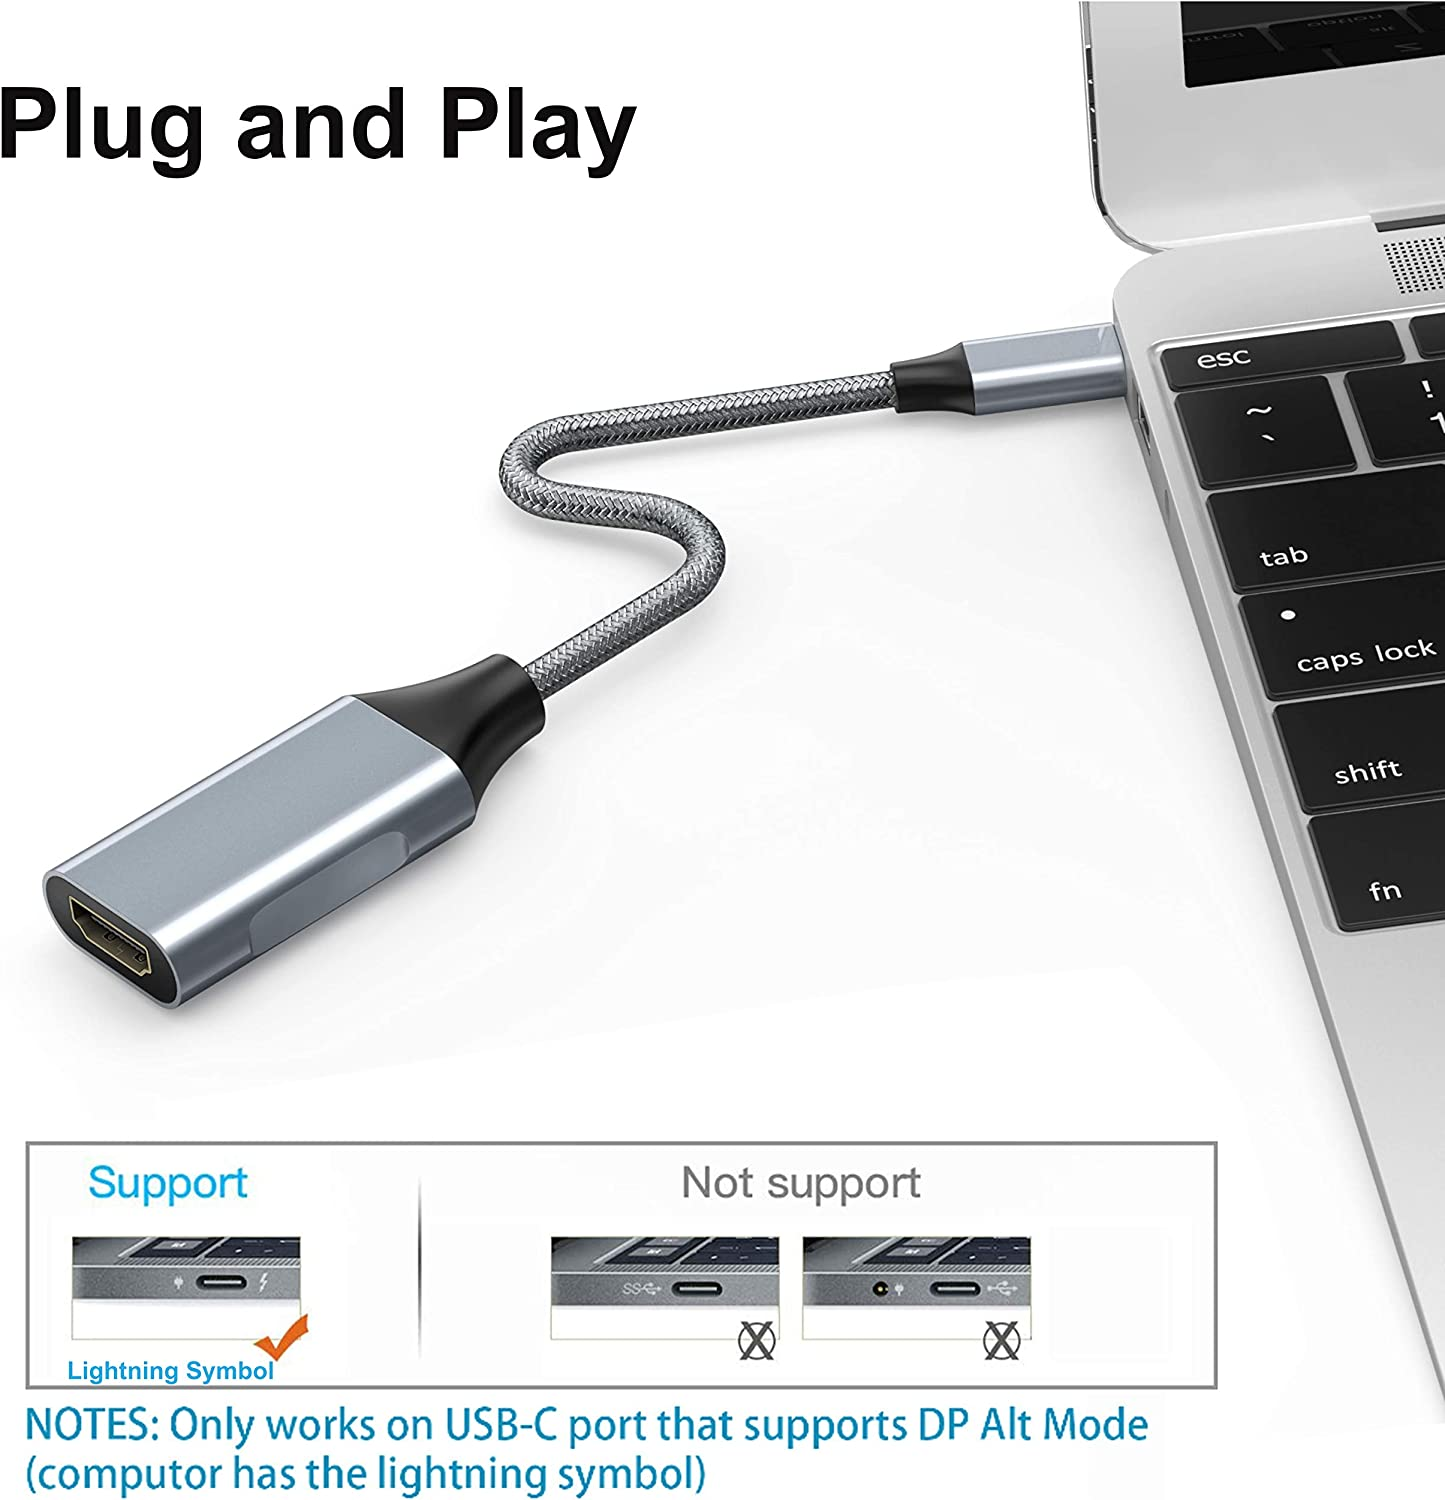 USB C to USB Adapter Vilcome 2 Pack Thunderbolt 3 to USB 3.0 Adapter,USB C Female to USB Male Adapter Compatible with MacBook Pro 2019,MacBook Air 2020,Dell XPS and Type C Devices